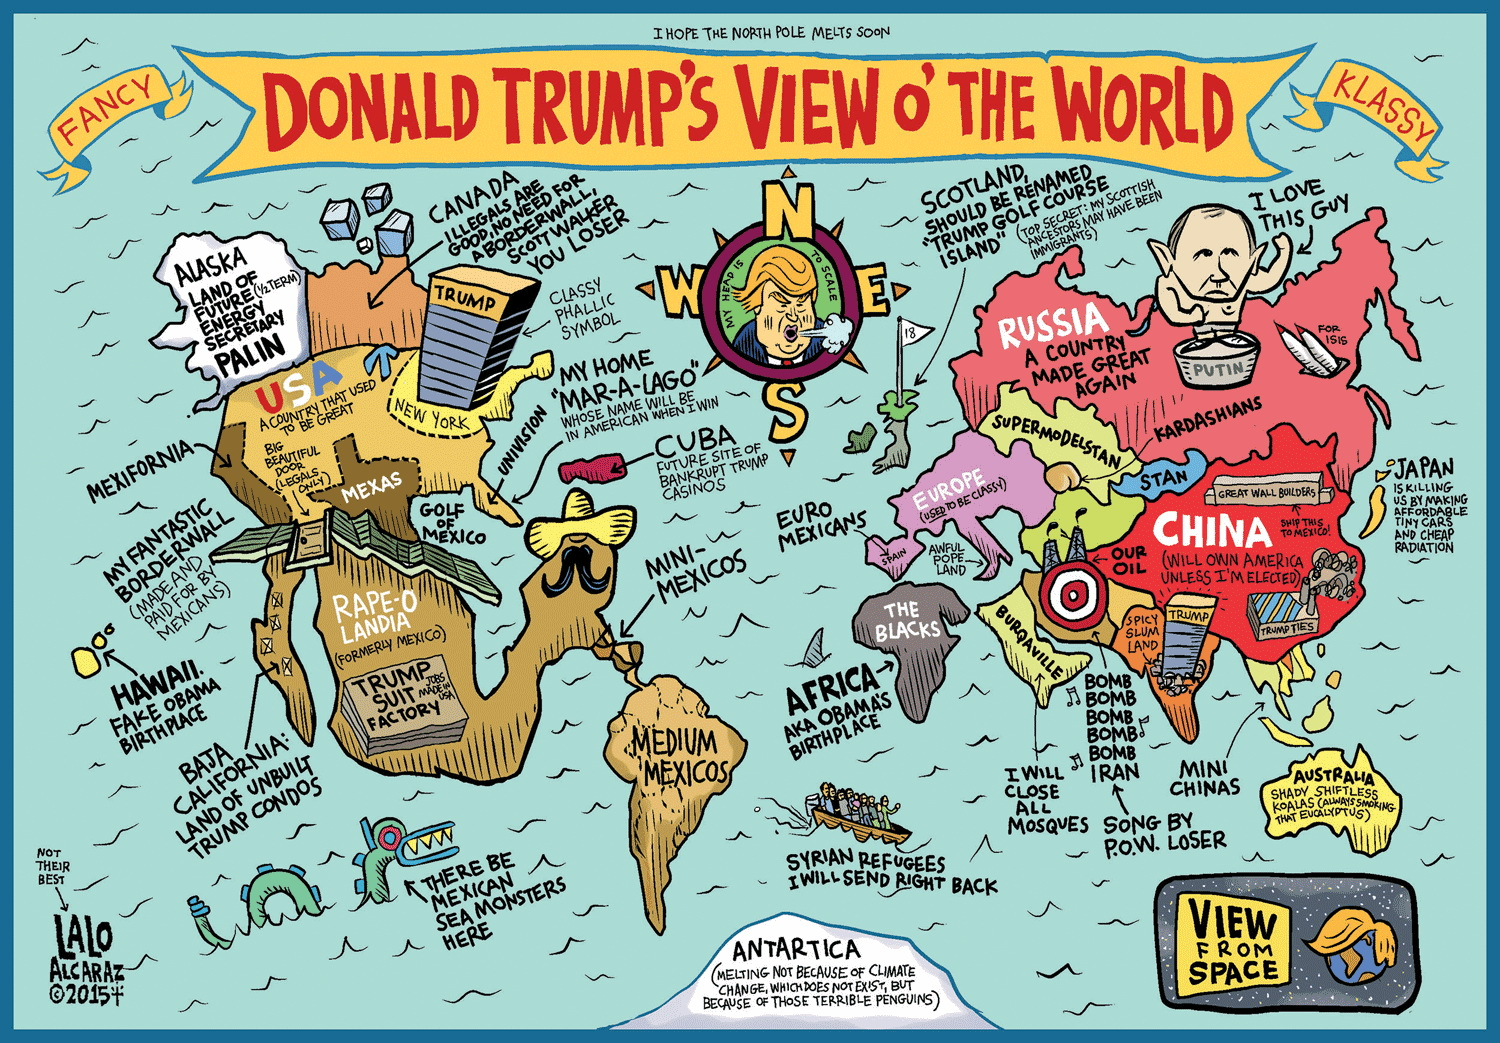 A map of the World according to Donald Trump - 2015